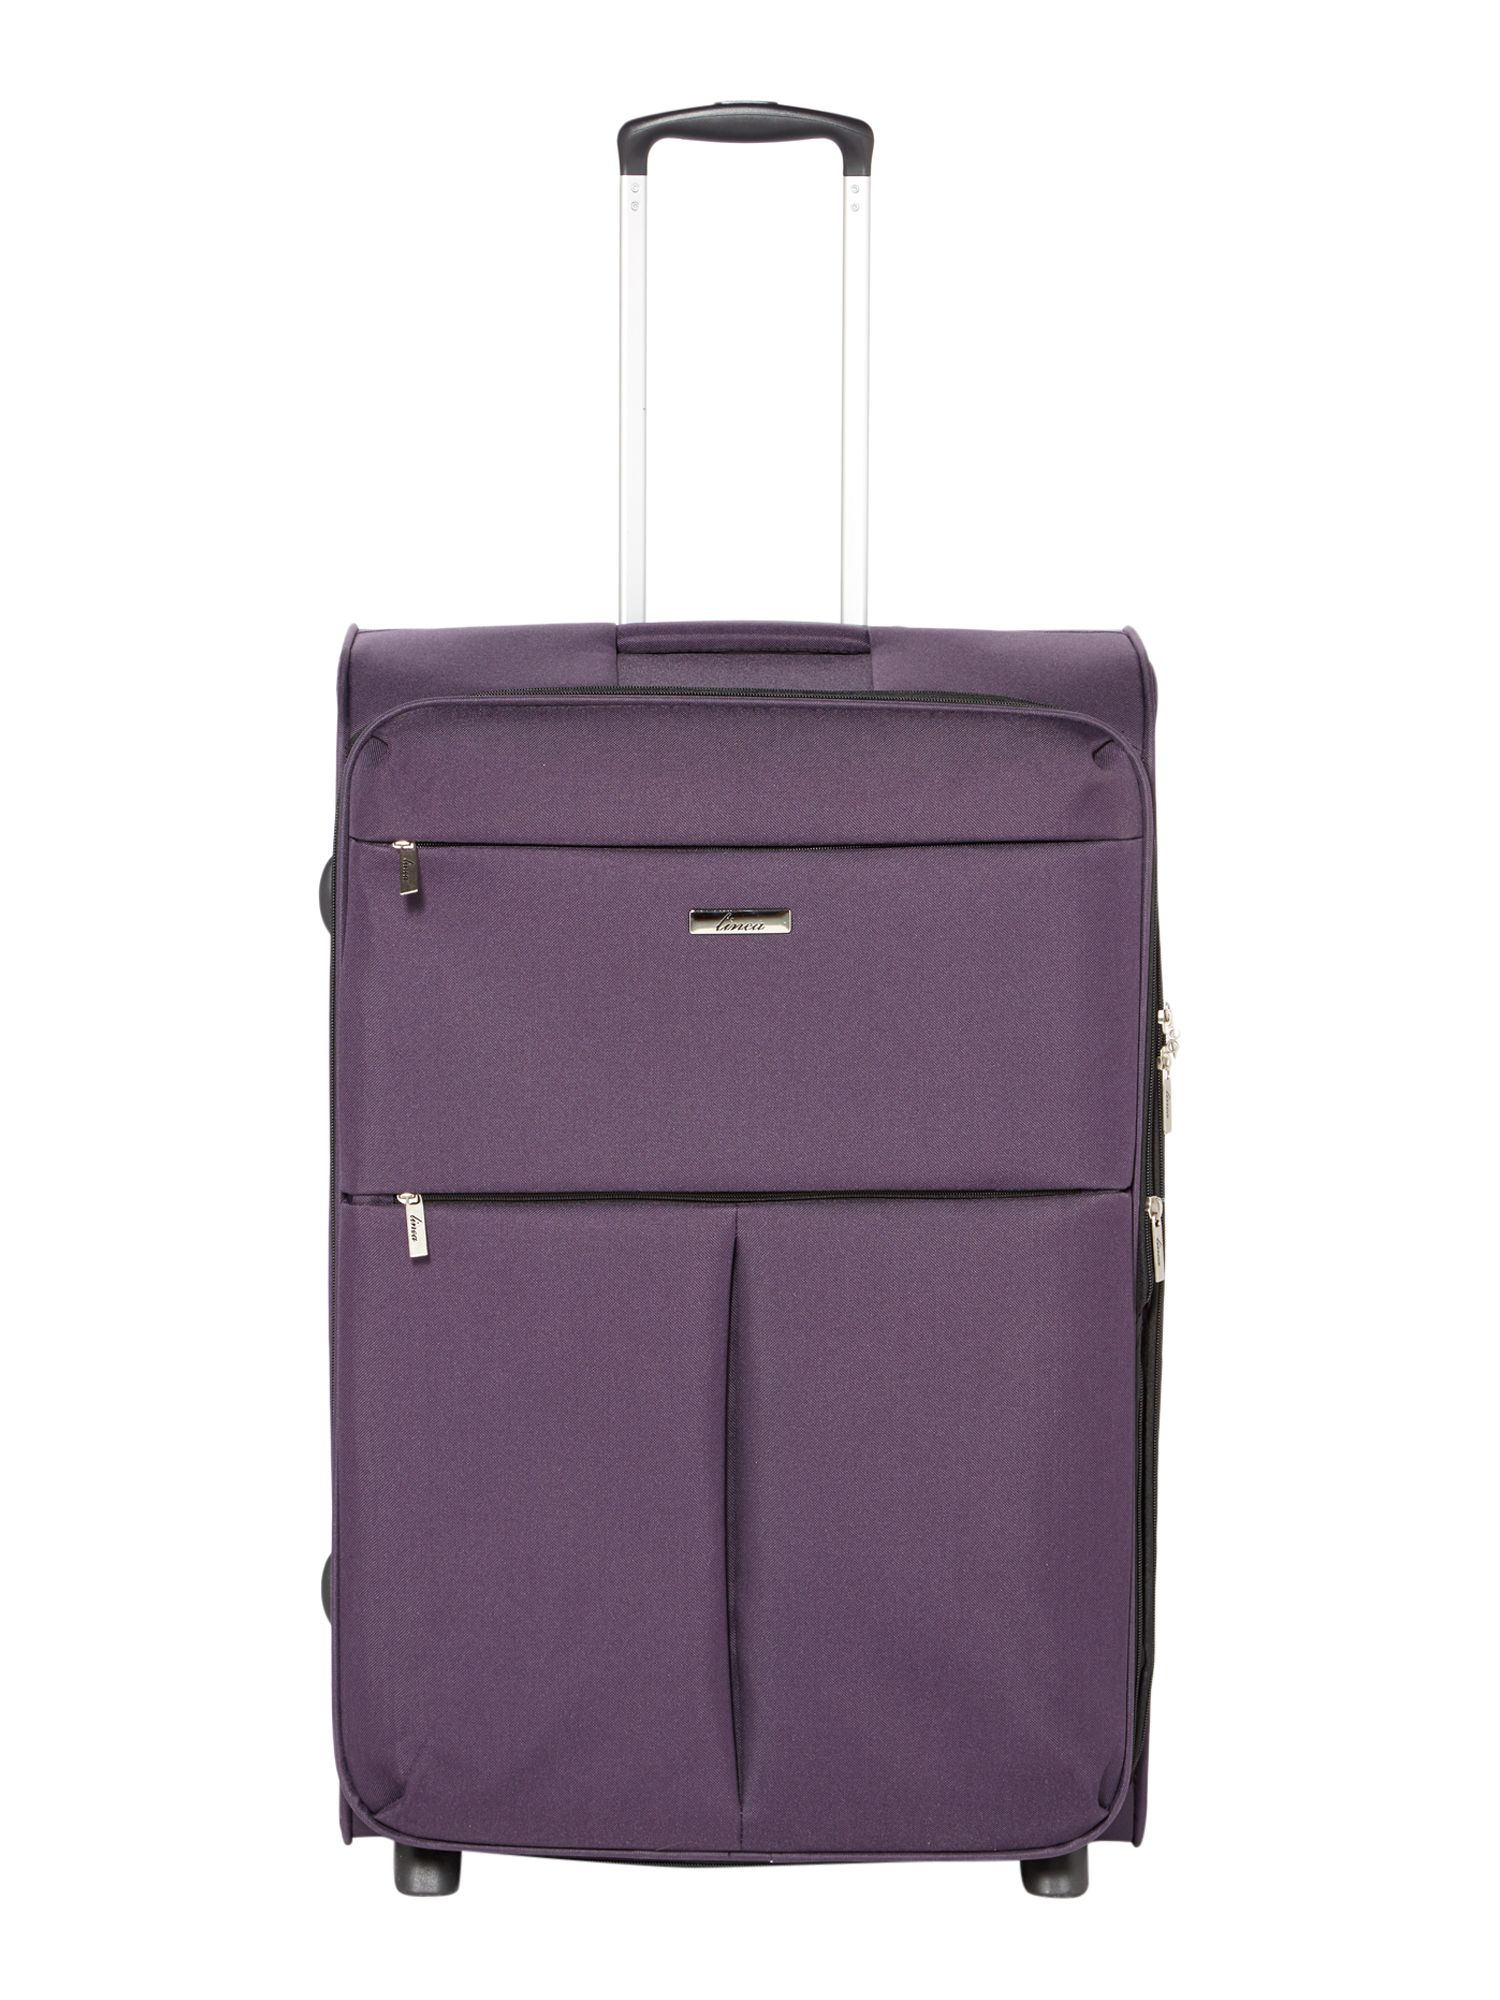 Linea Cambridge purple 2 wheel soft large suitcase Purple